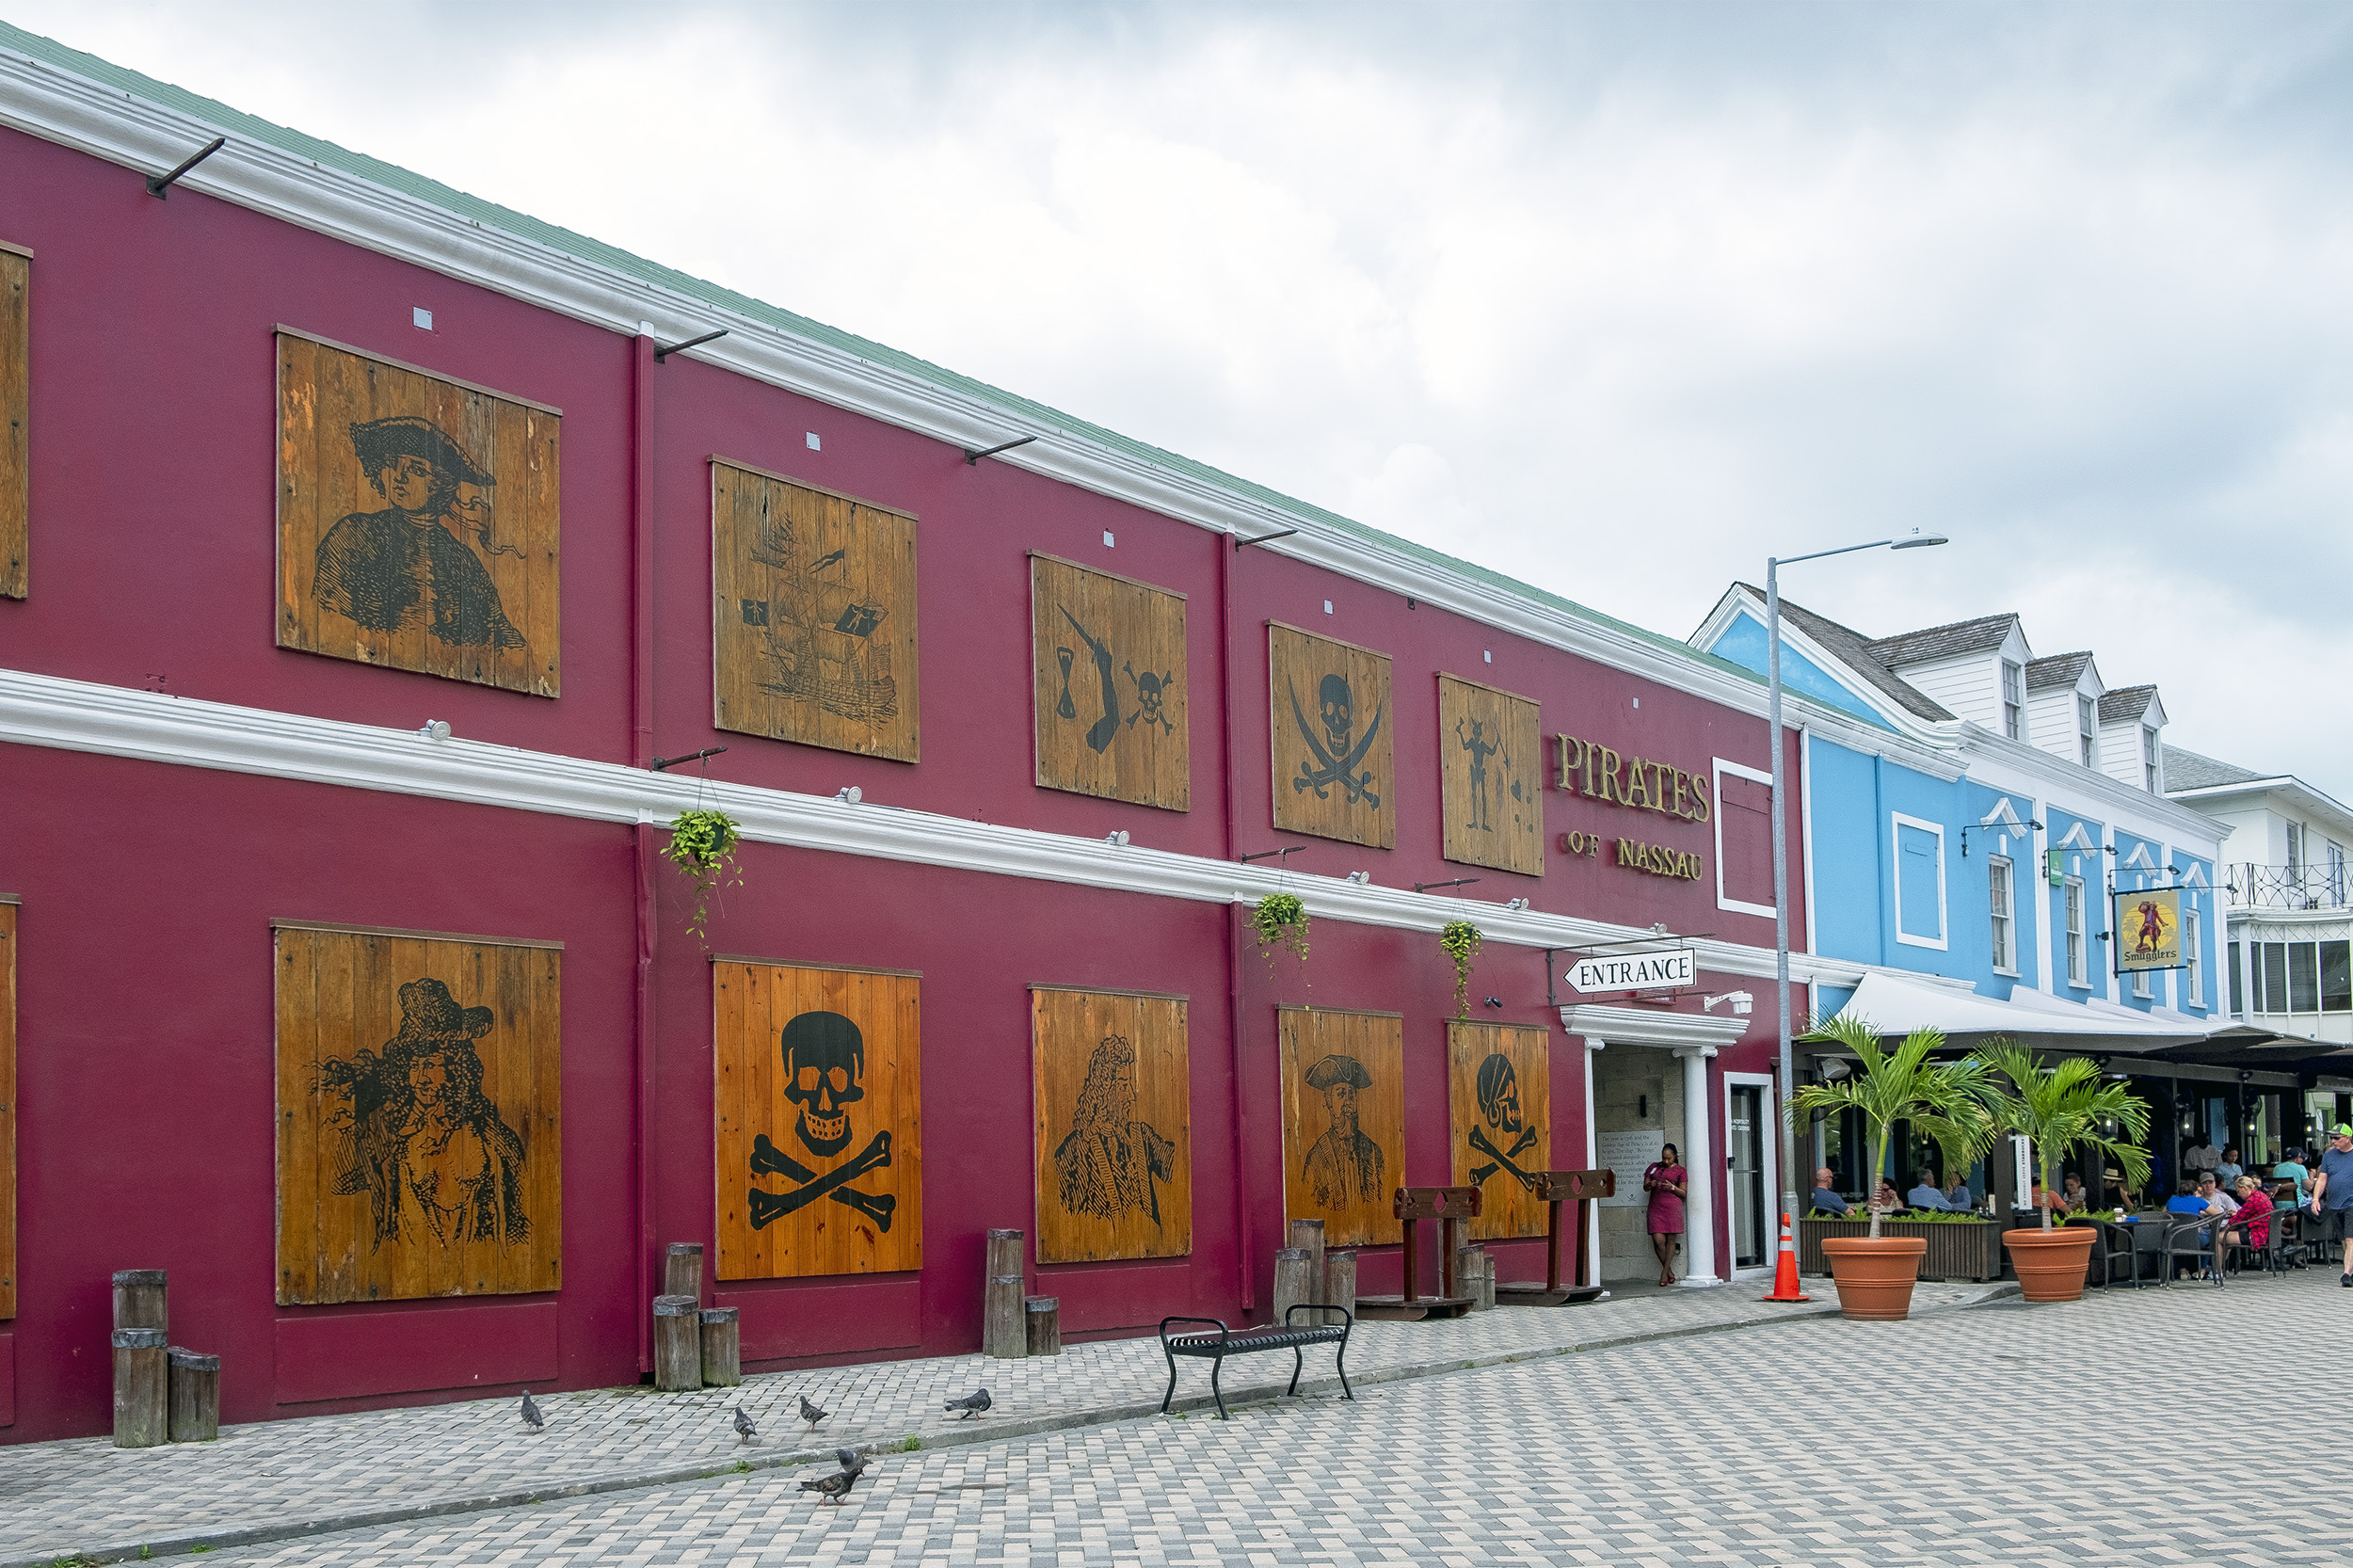 Pirates of Nassau Bahamas Piratmuseum